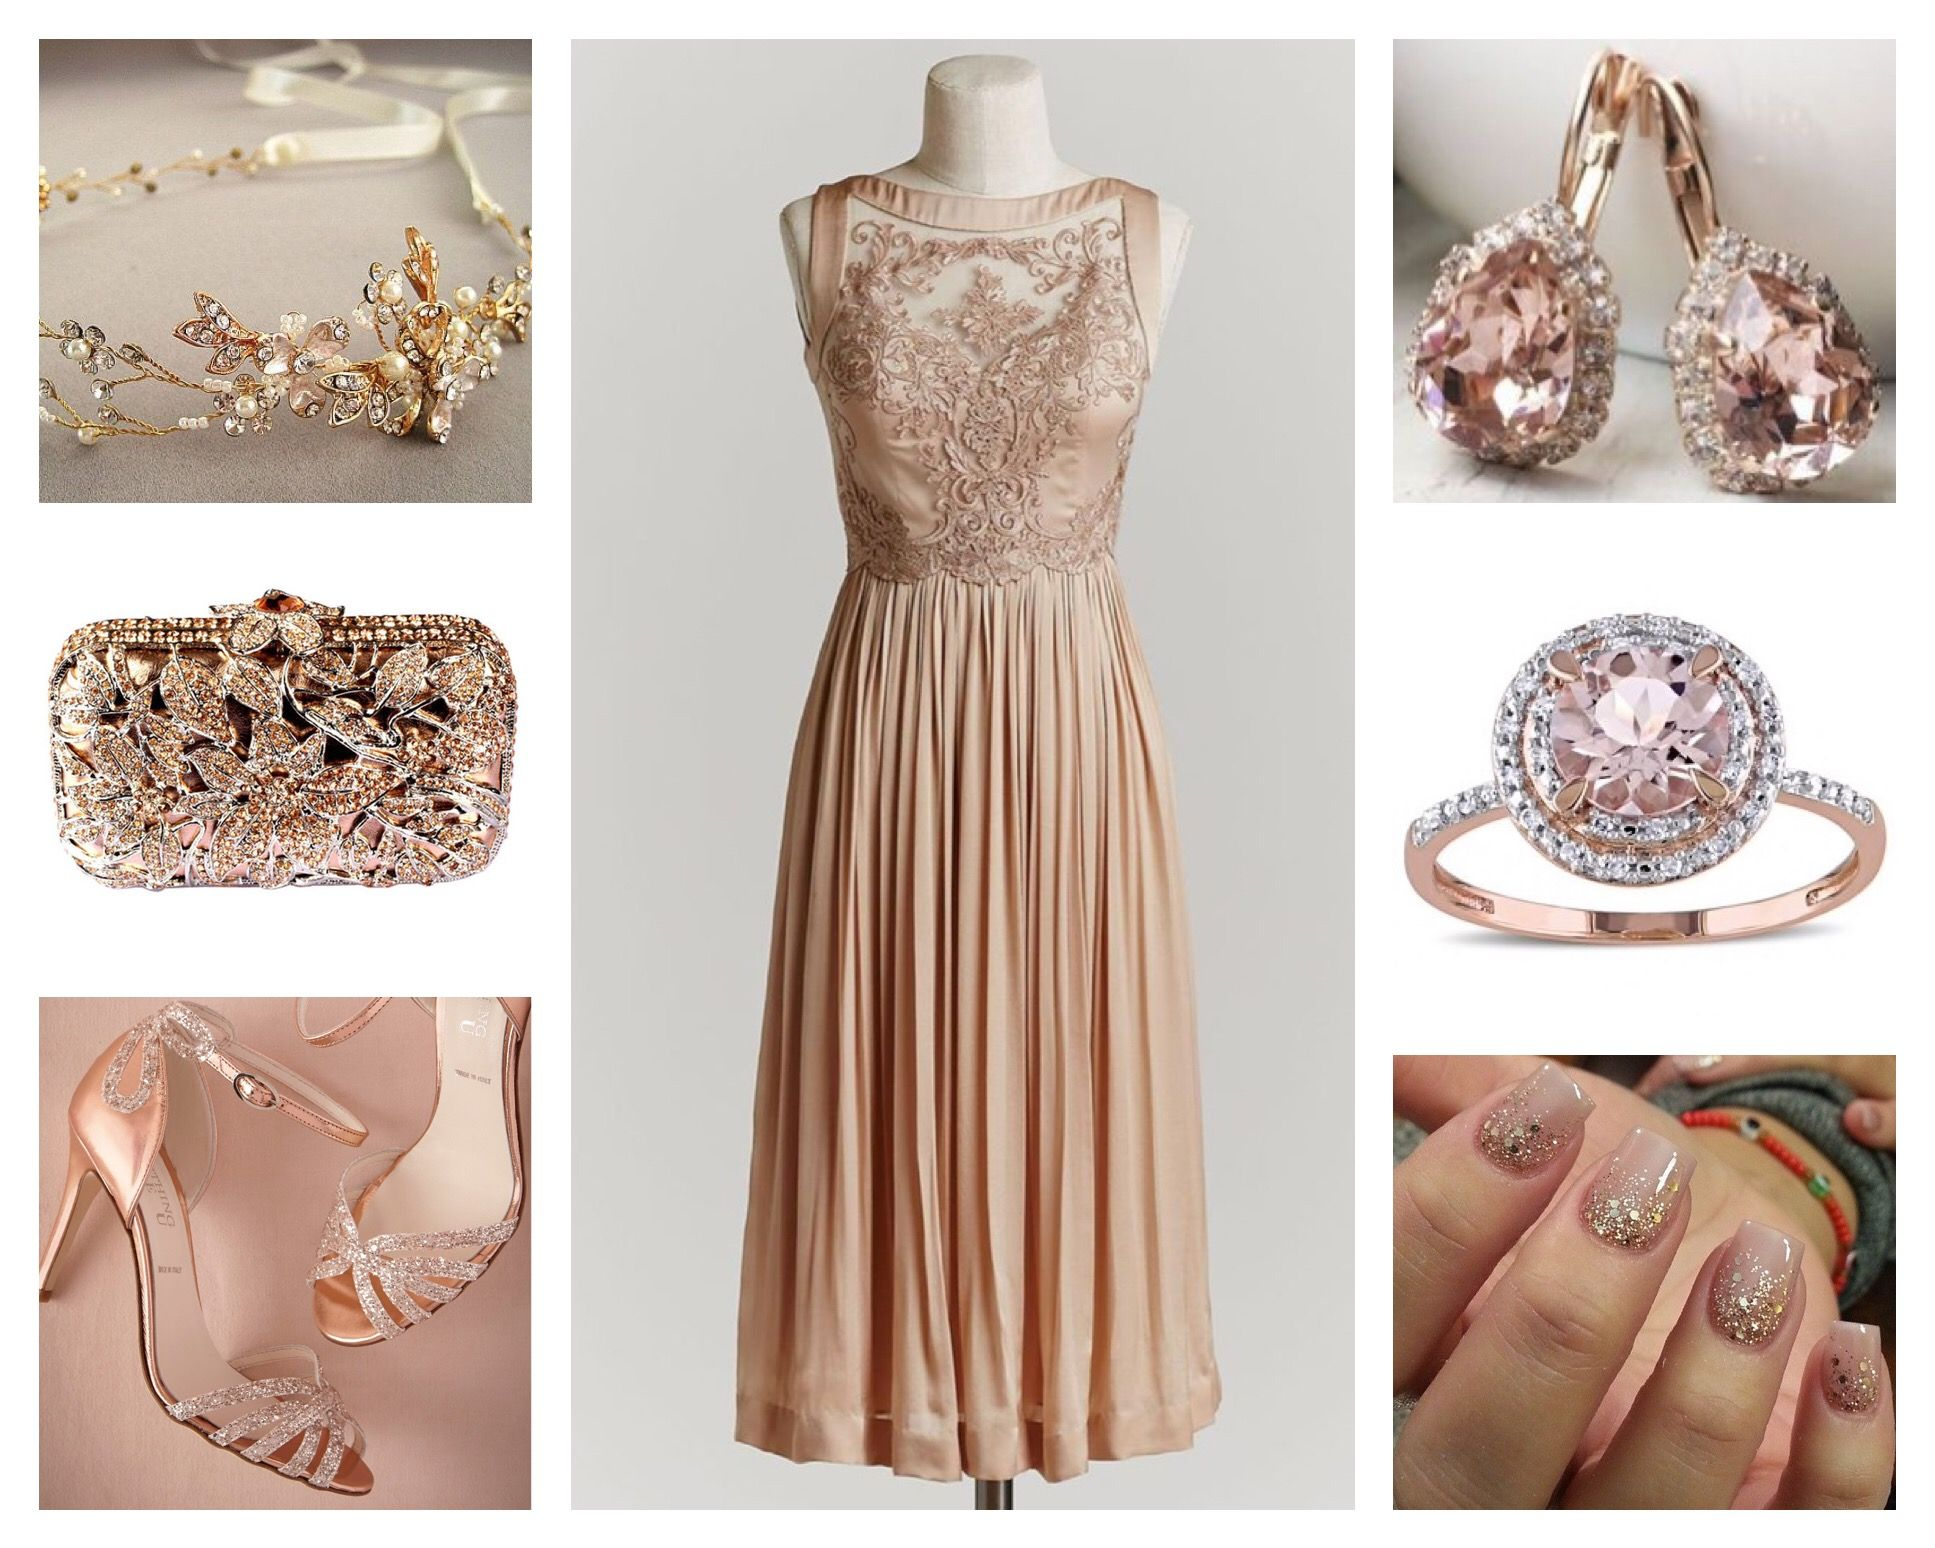 ce38d2d78c4 Blush Pink   Rose Gold Outfit - Silk and lace gown